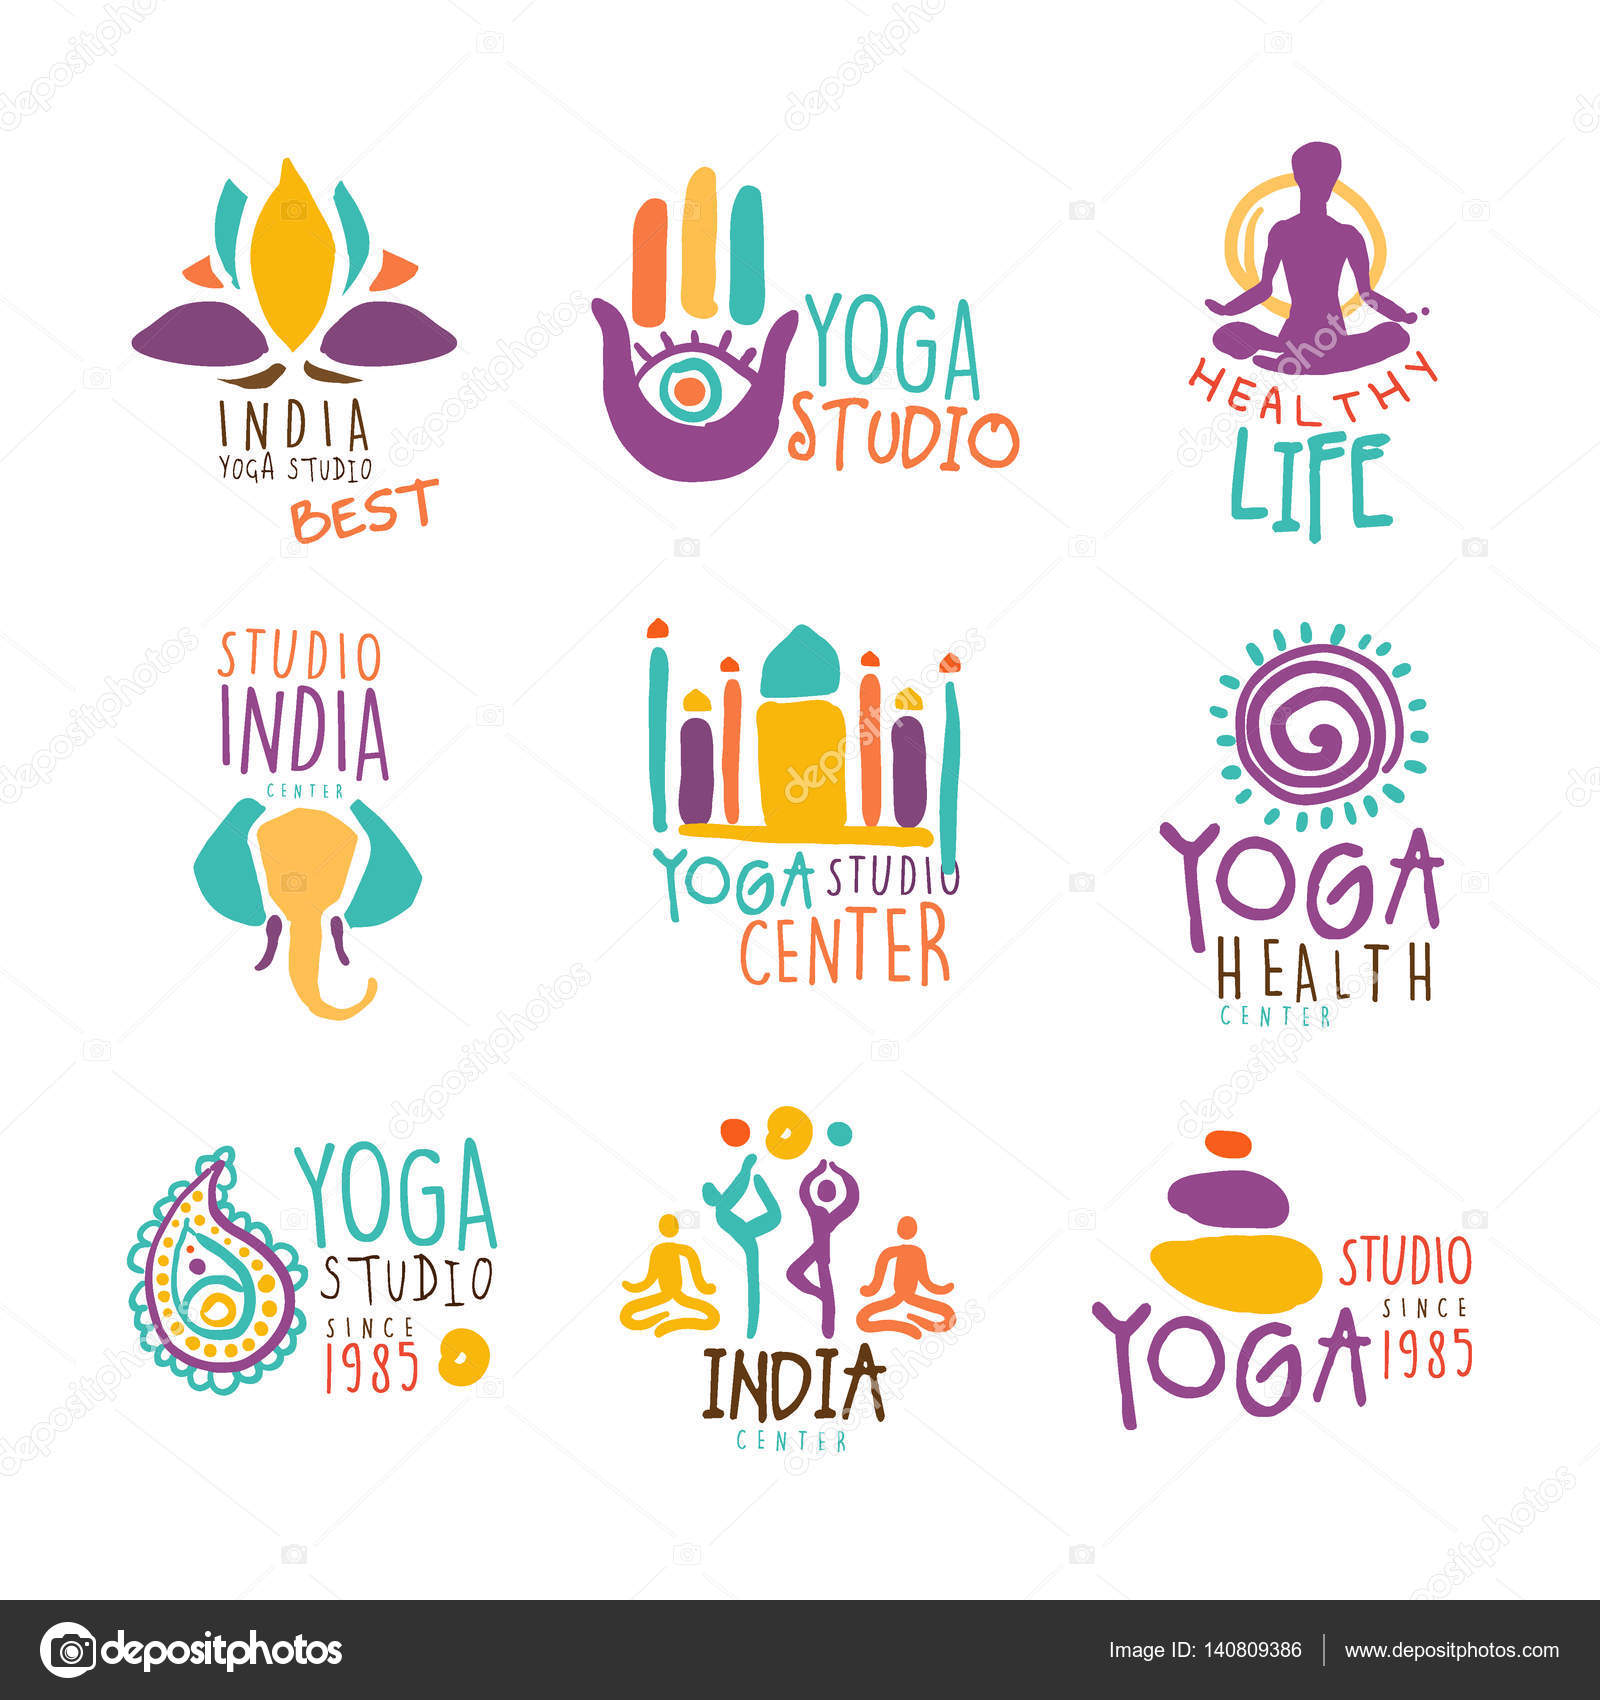 Yoga Center Set Of Colorful Promo Sign Design Templates With Different  Indian Spiritual Symbols For Fitness